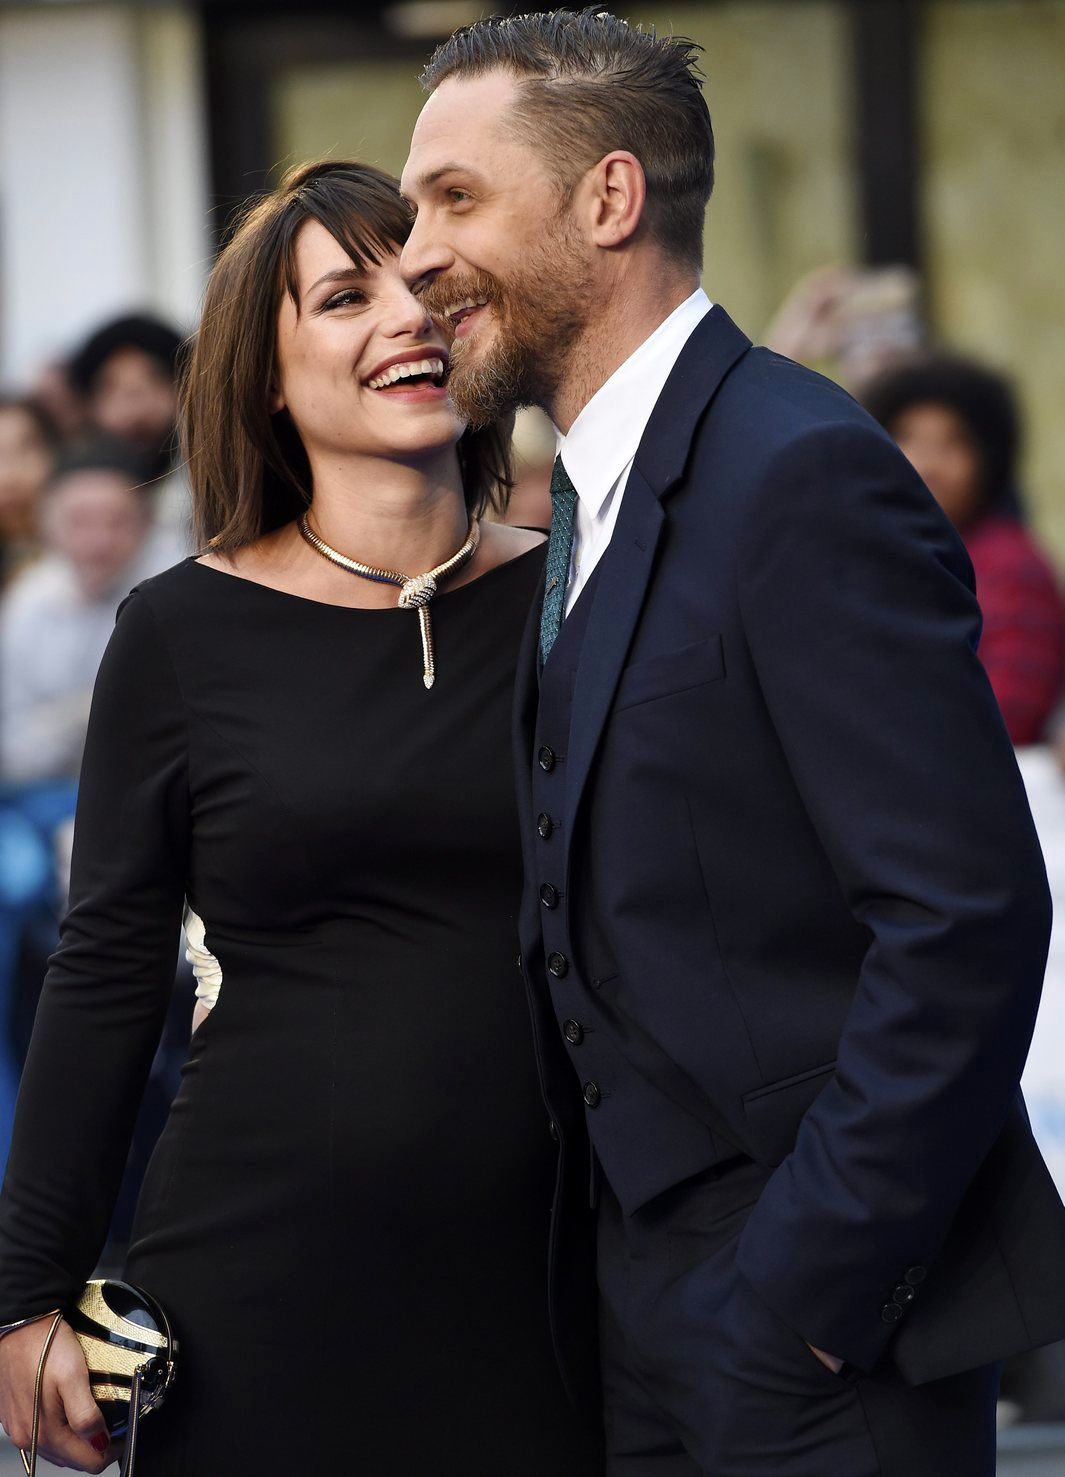 Tom hardy and wife charlotte riley at legend premiere in london tom hardy and wife charlotte riley at legend premiere in london solutioingenieria Images